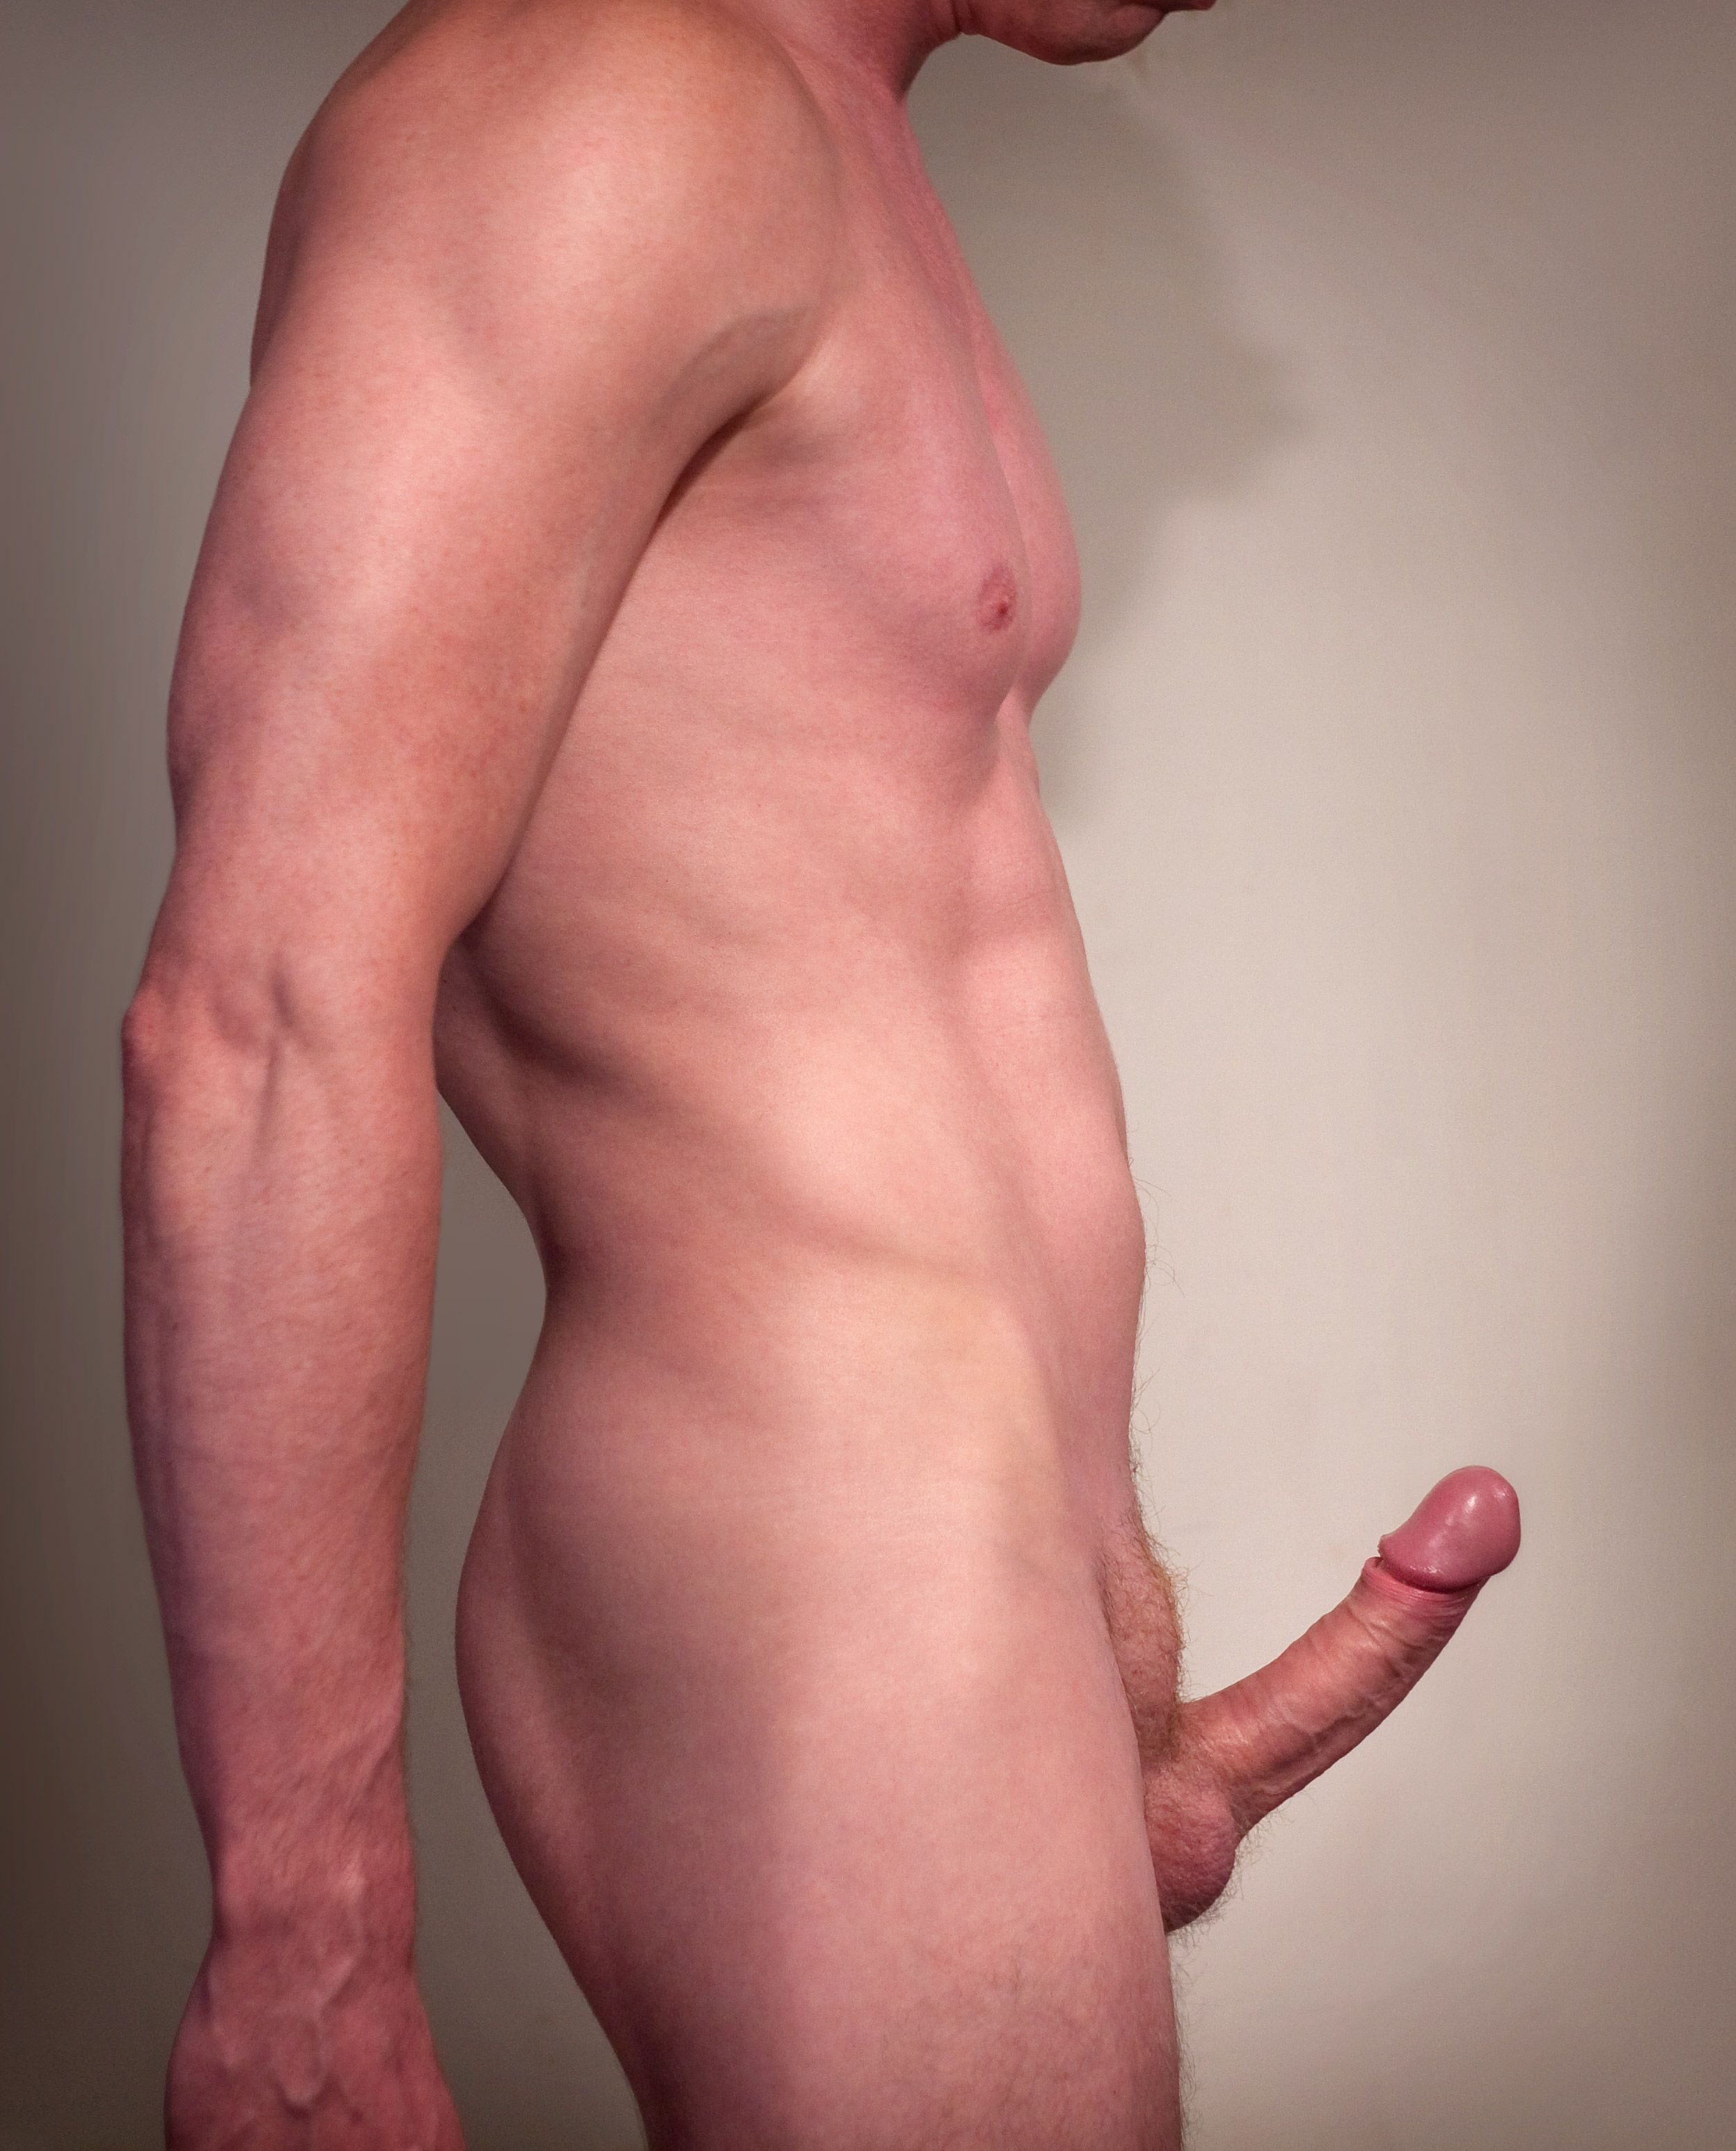 Nude Males With Erect Penis